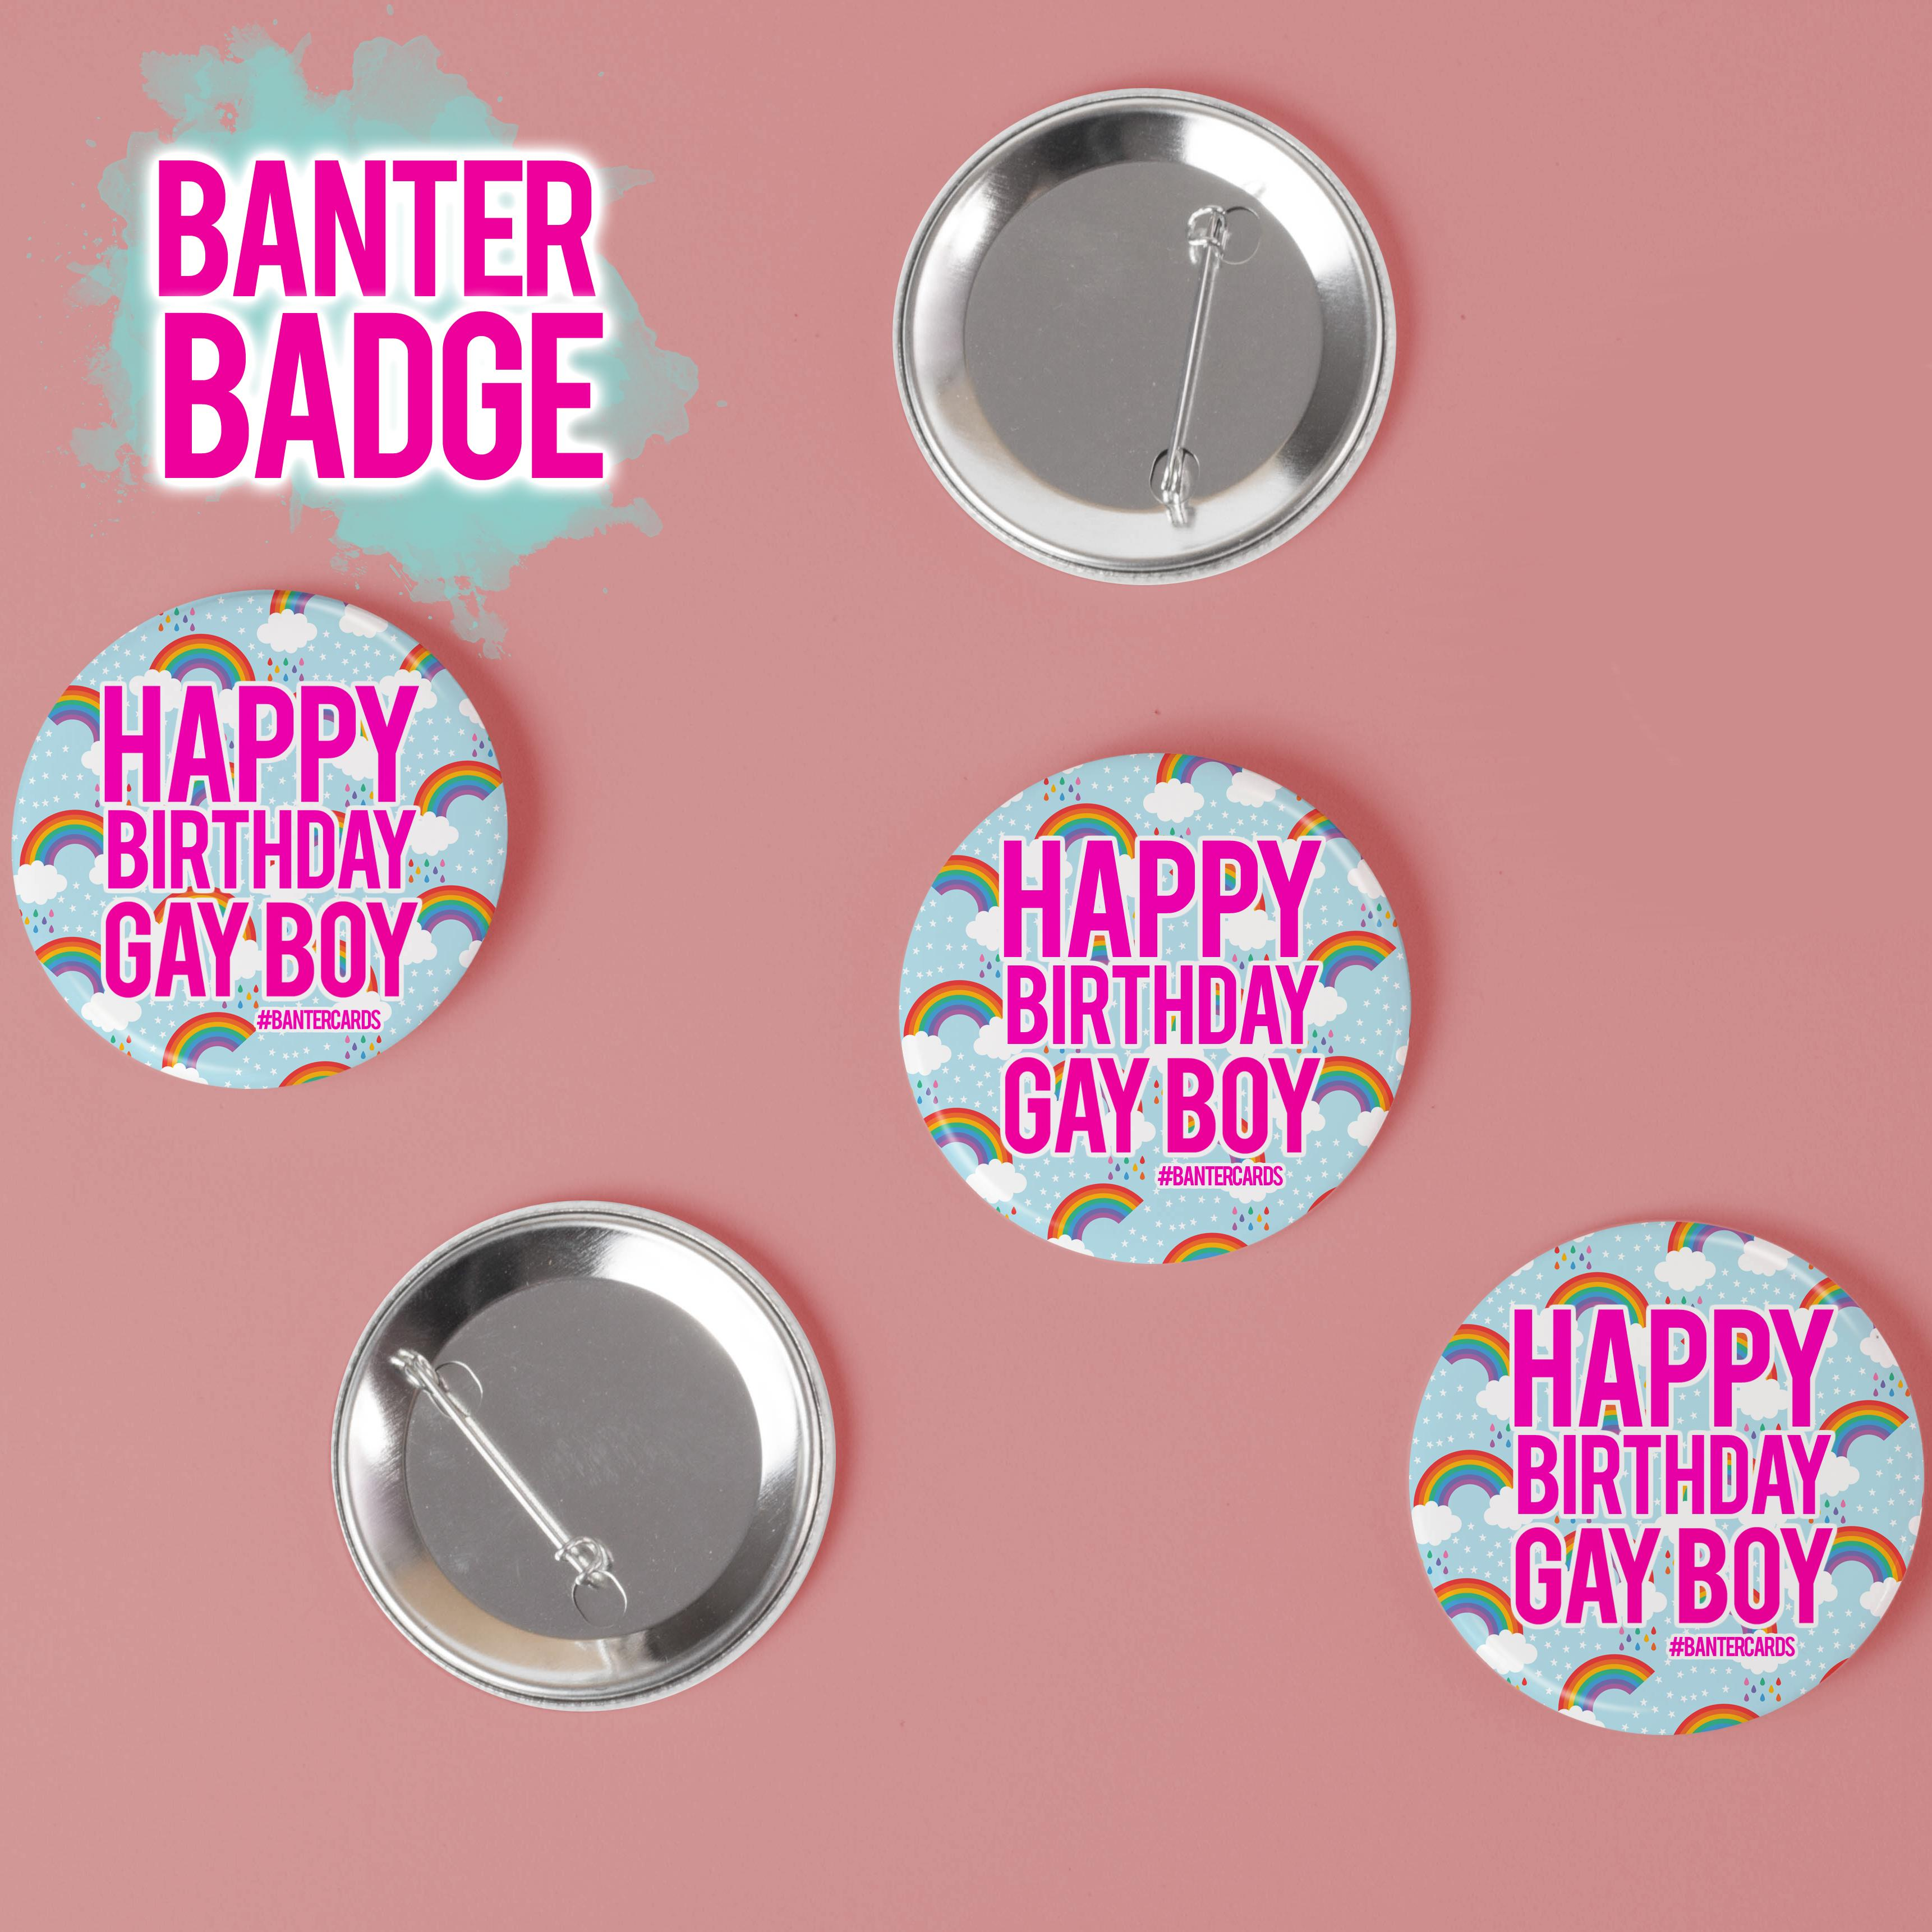 HAPPY BIRTHDAY BADGE with Stickers Included to Personalise it.